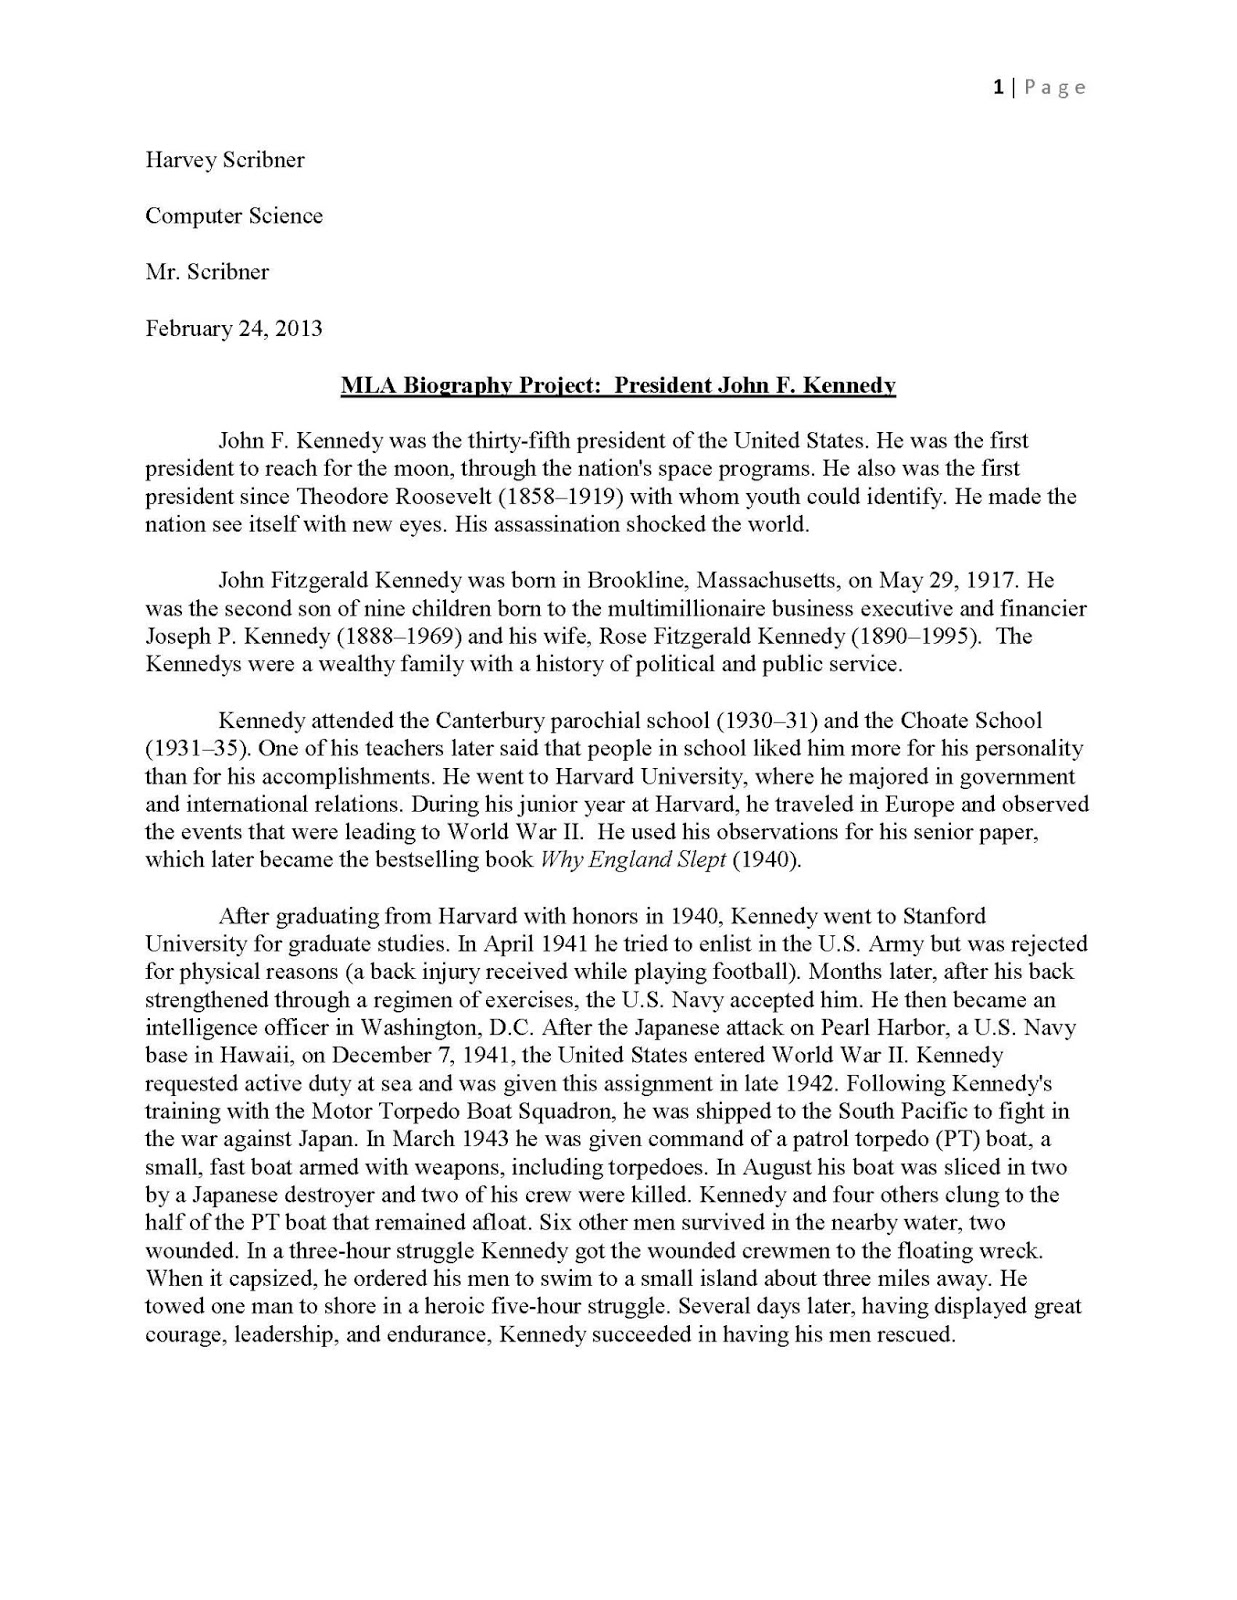 012 Jfkmlashortformbiographyreportexample Page 1 Essay Example Unique Autobiography Of About Yourself Tagalog Bio For Students Full